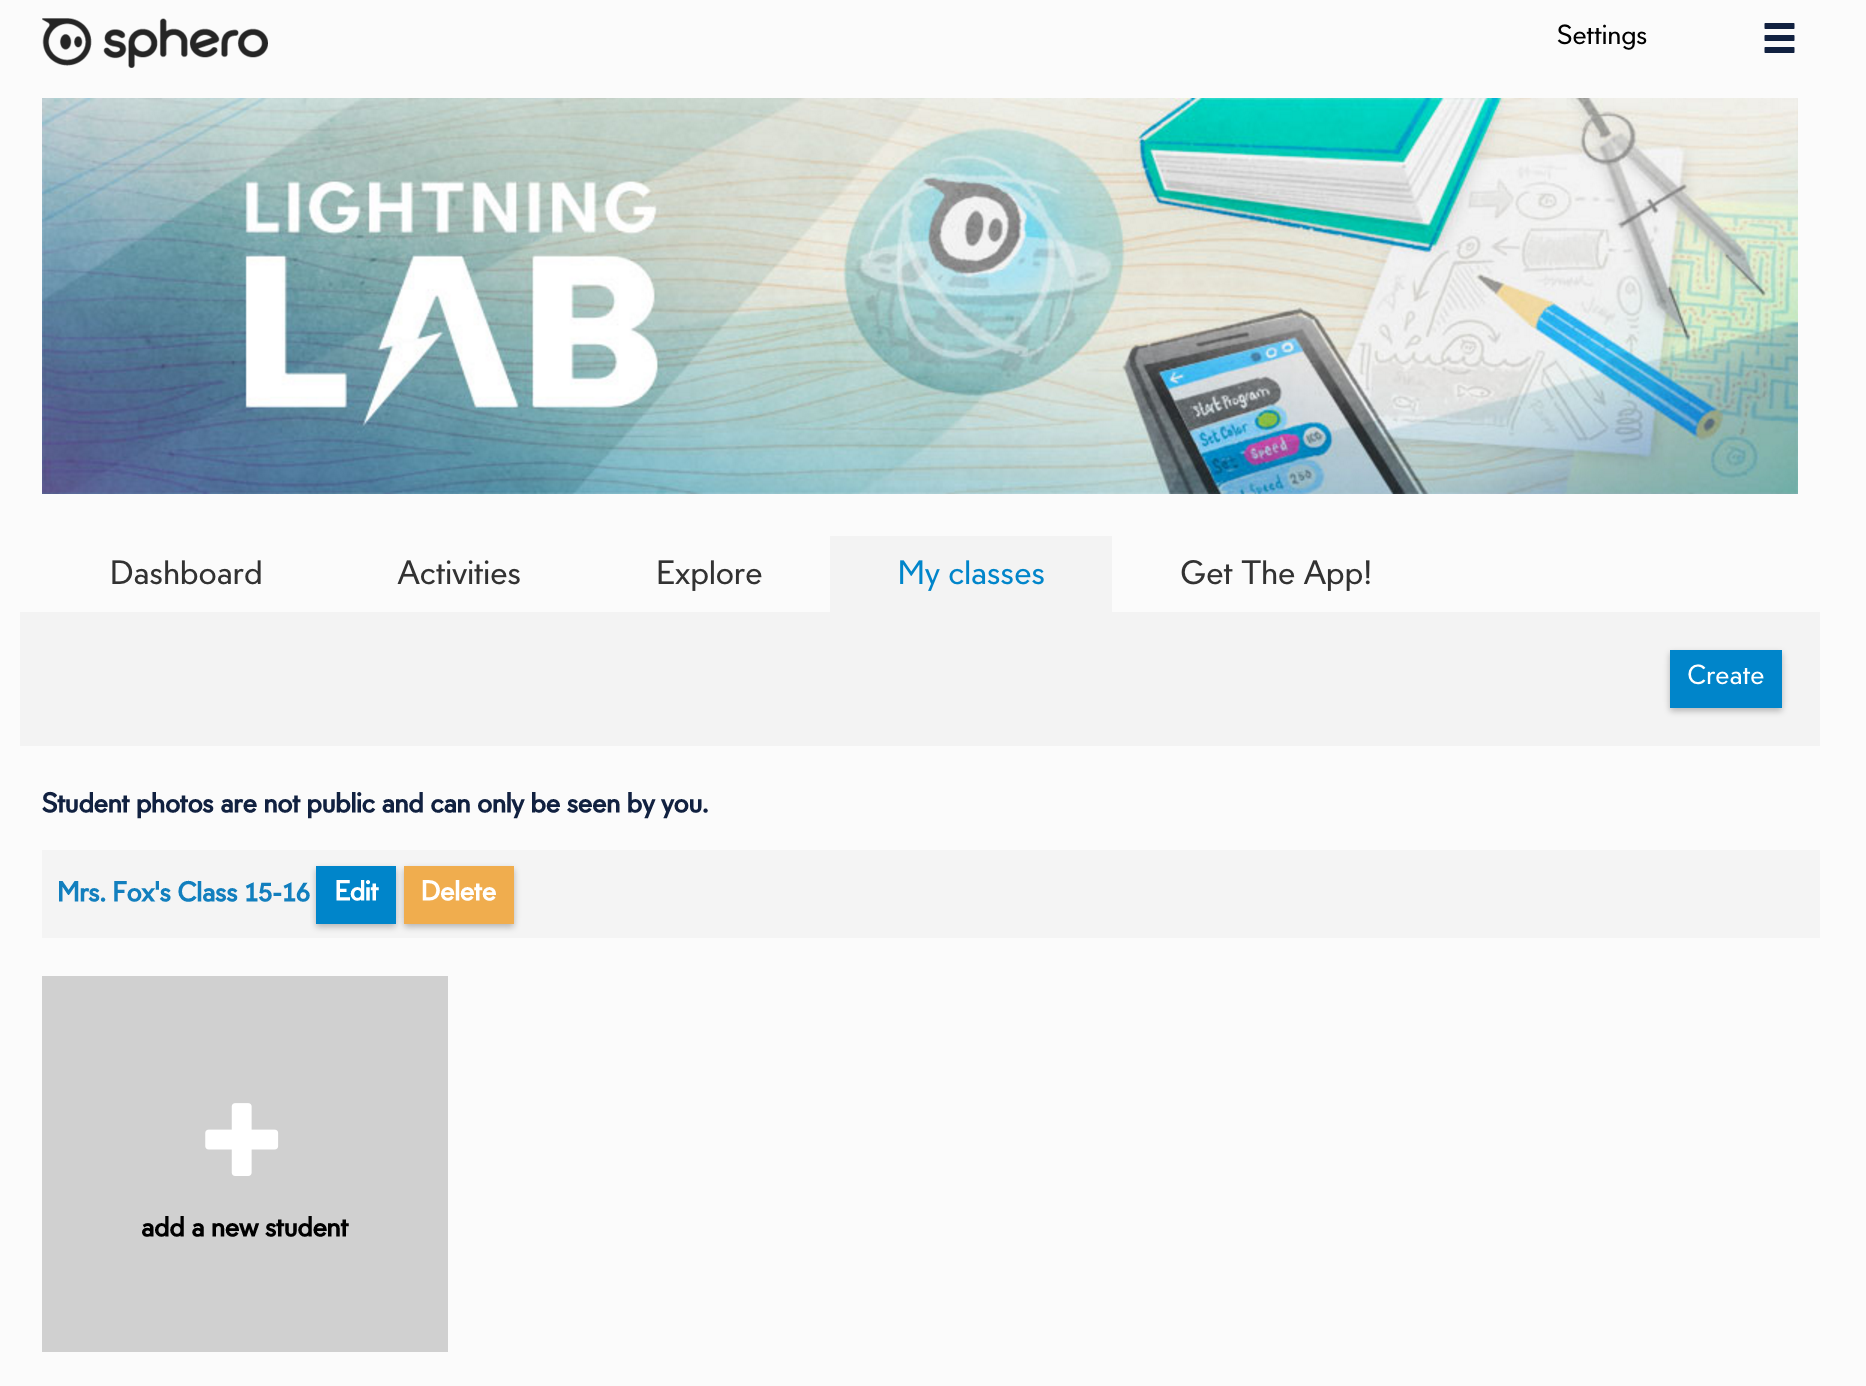 Introducing SPRK Lightning Lab for Sphero and Ollie